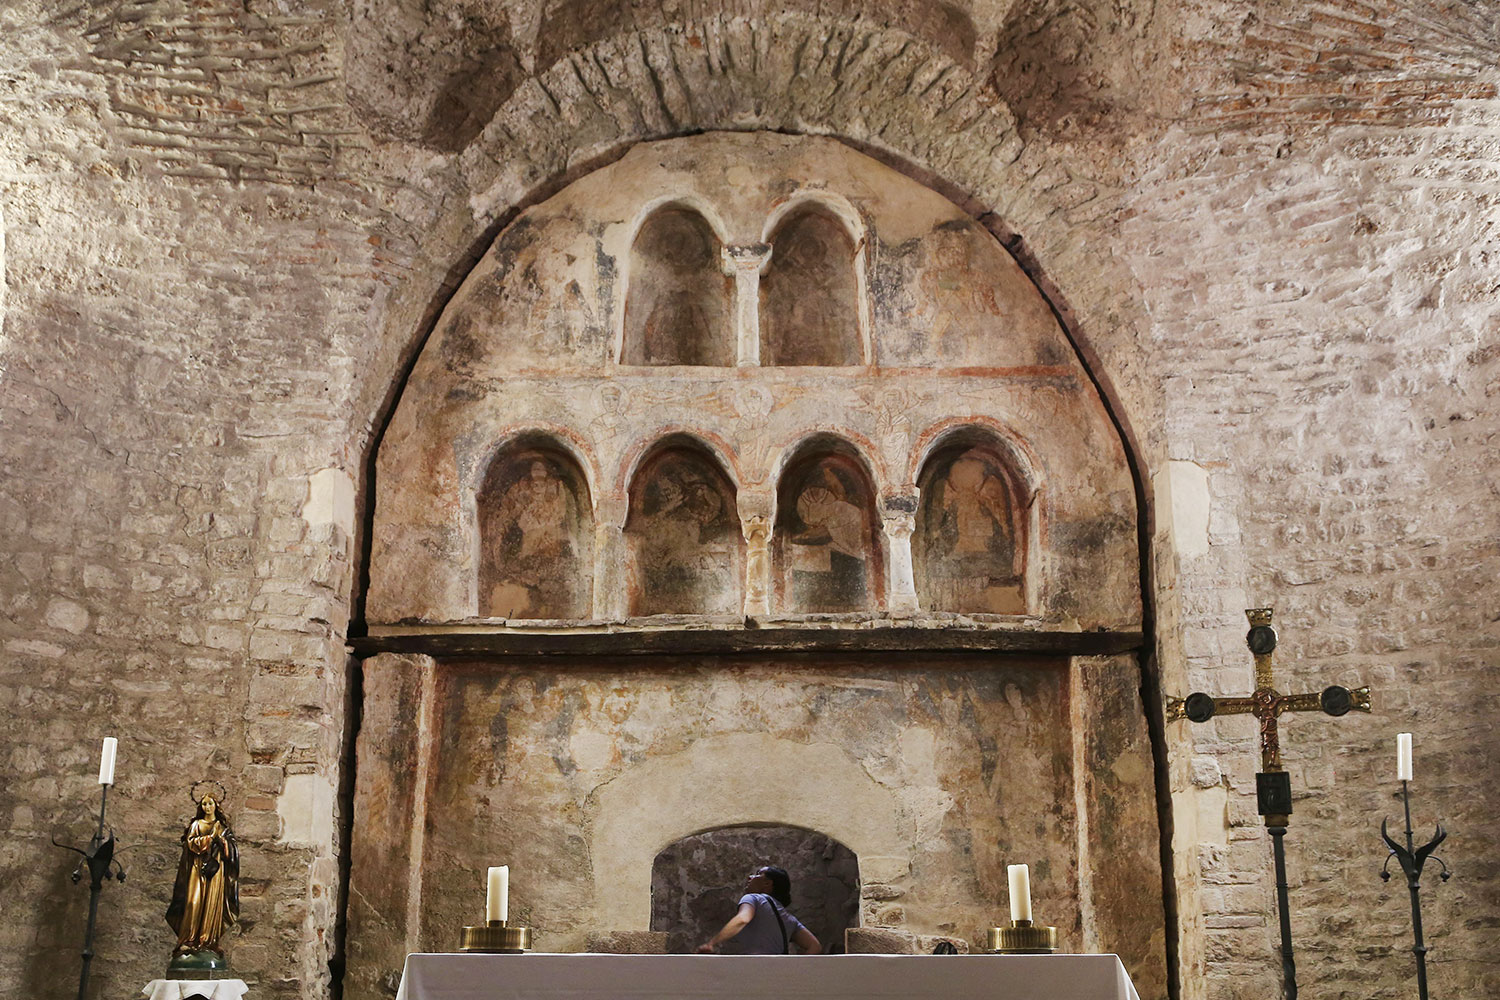 Borrassà's altarpiece would have hung over these Romanesque frescoes, which had gone out of style by the 15th century. The museums' panel was located behind the candle that sits on the right half of the table.